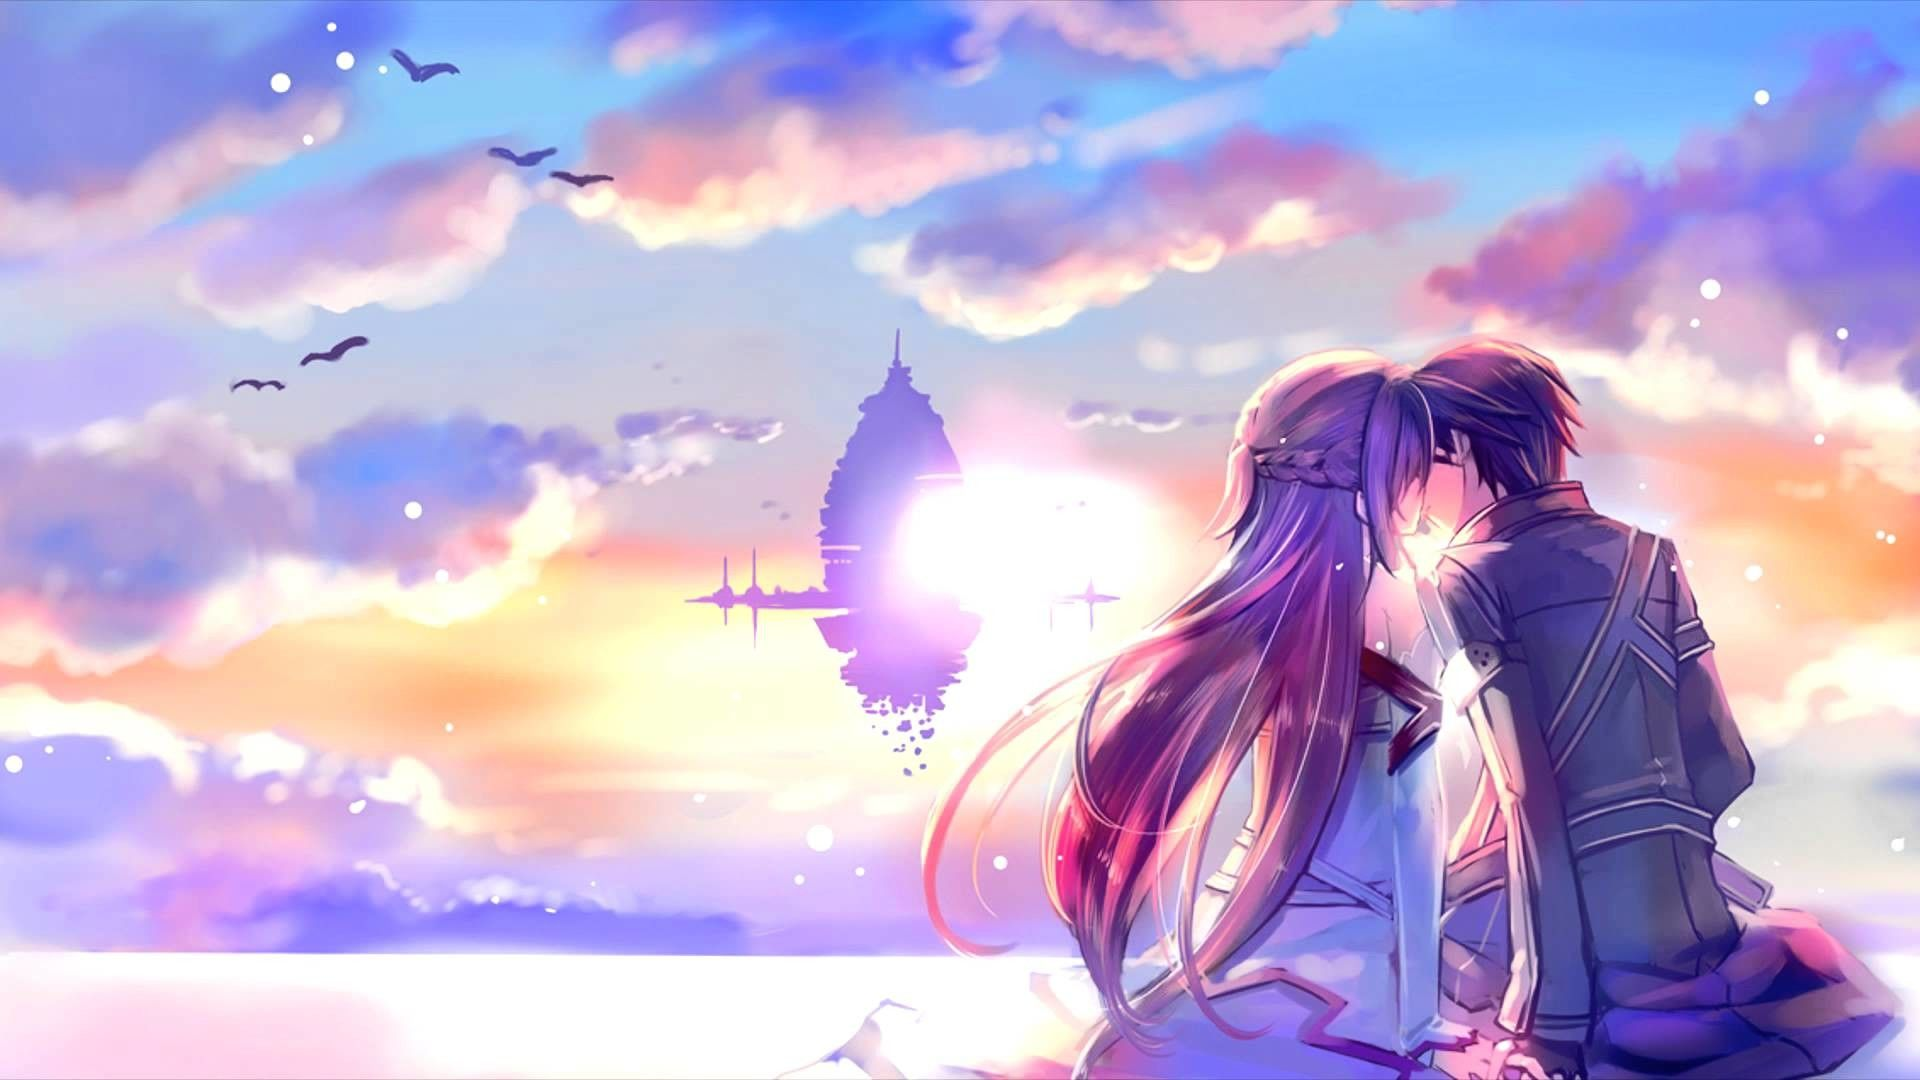 X Romantic Anime Wallpapers  Images